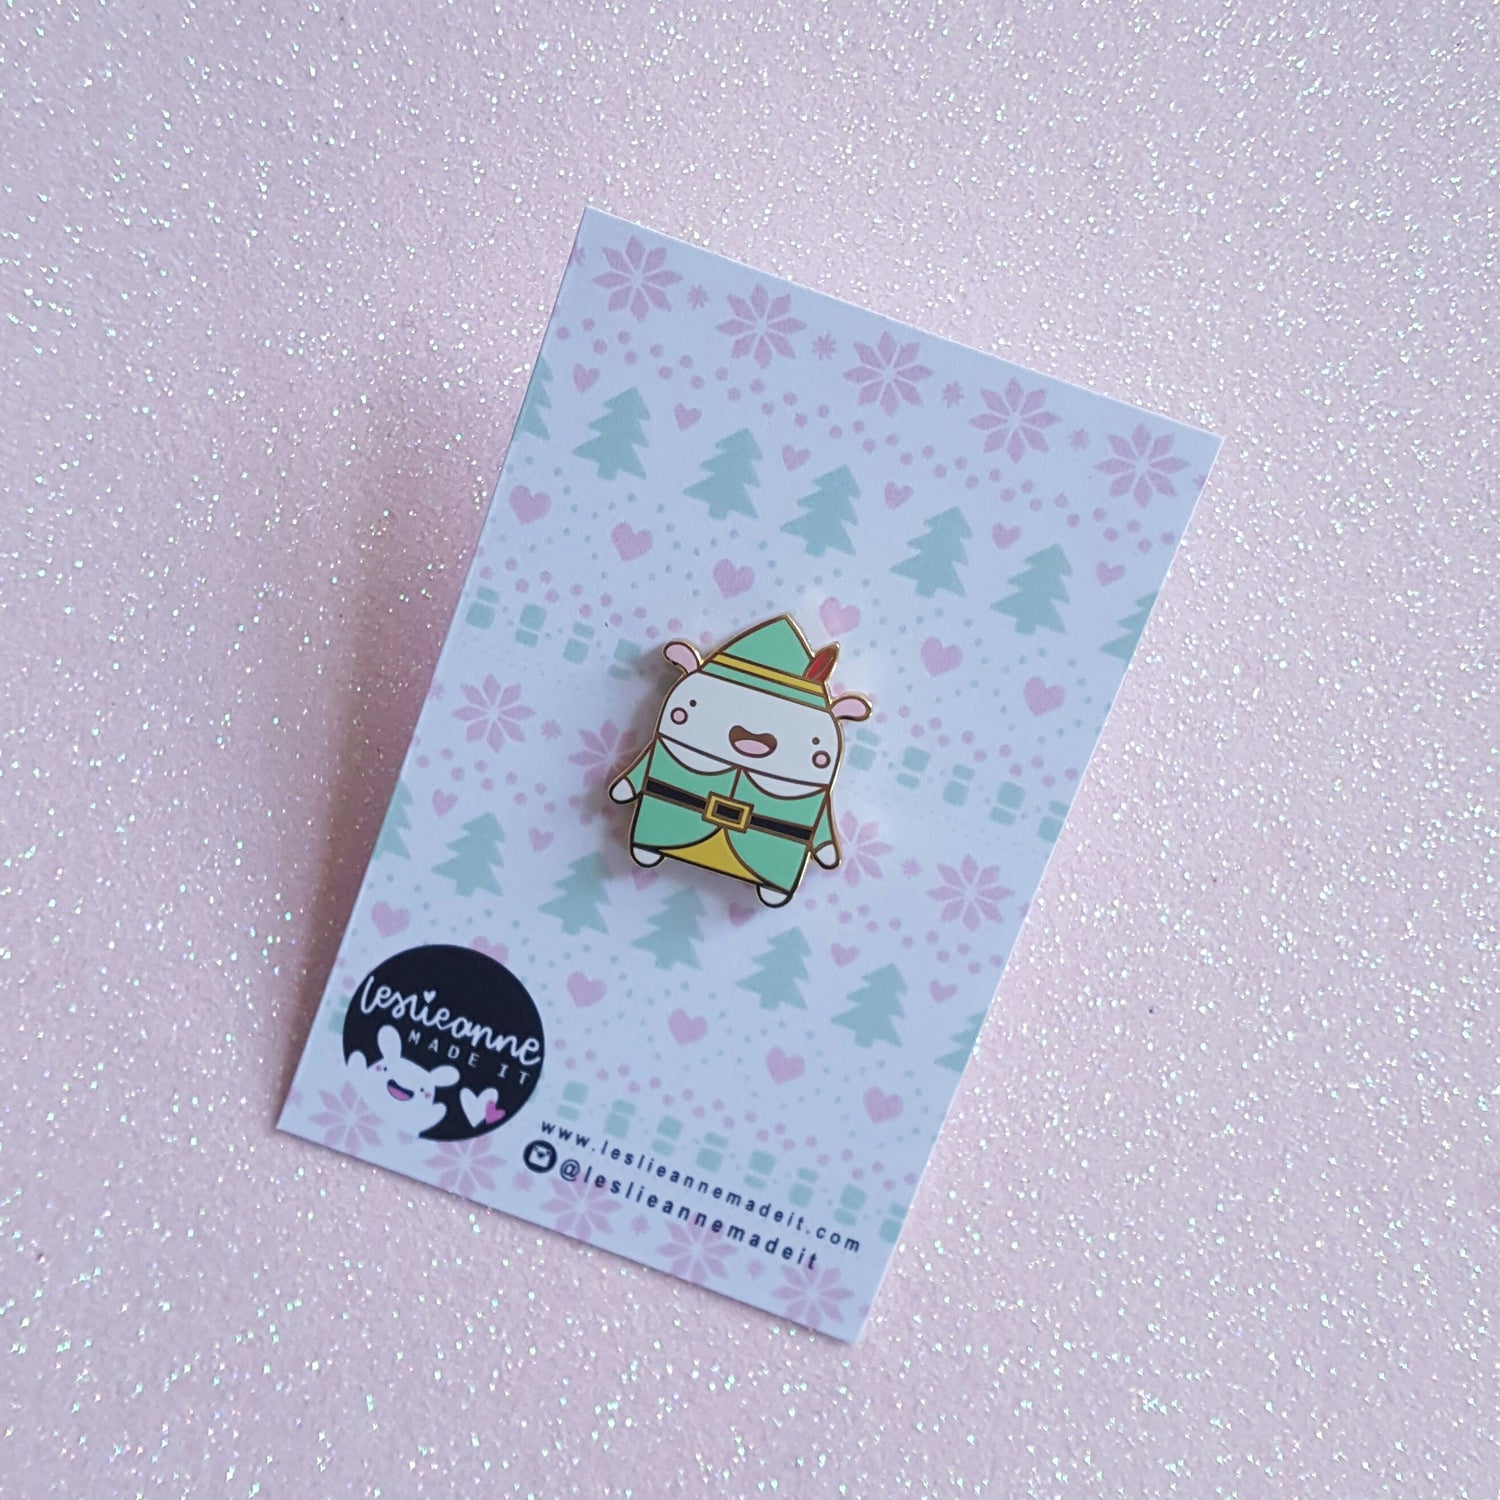 Image of Buddy the Christmas Elf Critter - Hard Enamel Pin